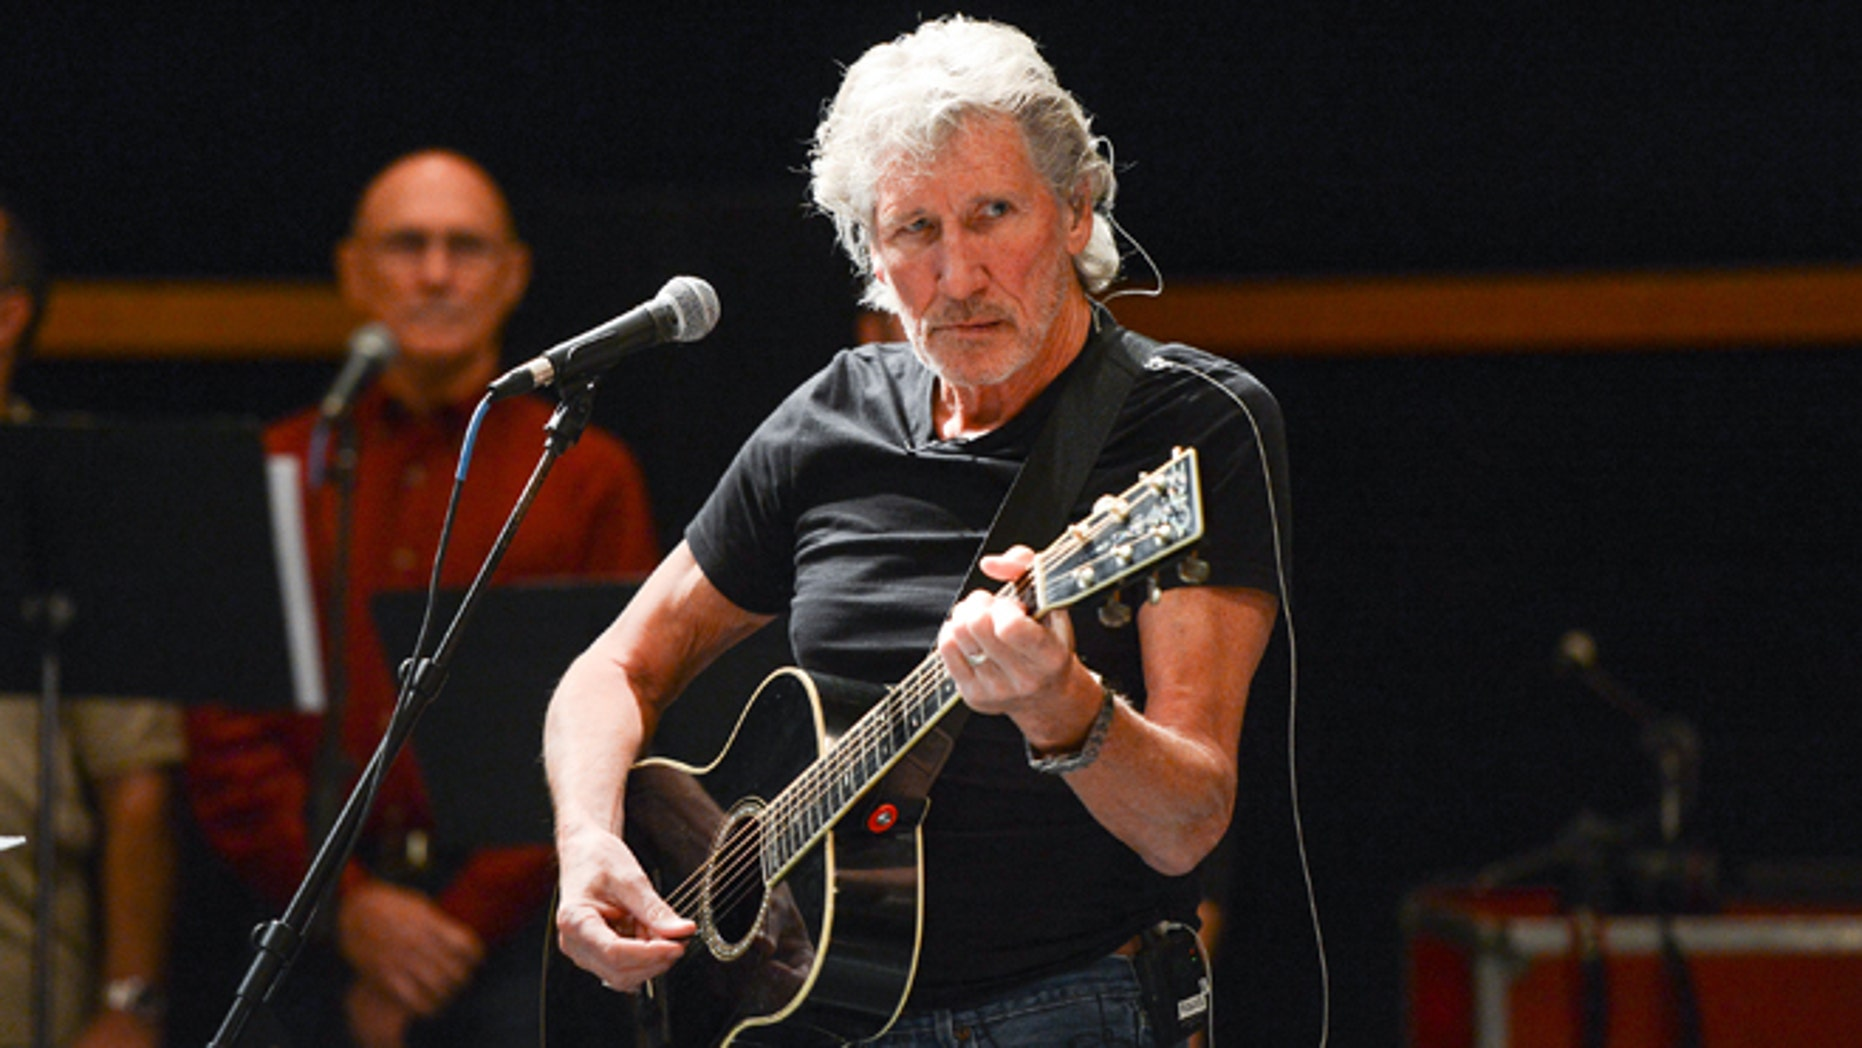 """FILE - In this Nov. 4, 2013 file photo, musician Roger Waters and his band hold rehearsals with members of the Wounded Warriors Project, in New York. In the first of three concerts this week in Mexico City, on Wednesday, Sept. 28, 2016, Waters blasted Donald Trump and called on Mexicos President Enrique Peña Nieto to """"listen to your people"""" and to answer for the thousands of missing persons in the country since the beginning of his mandate. (Photo by Evan Agostini/Invision/AP, File)"""